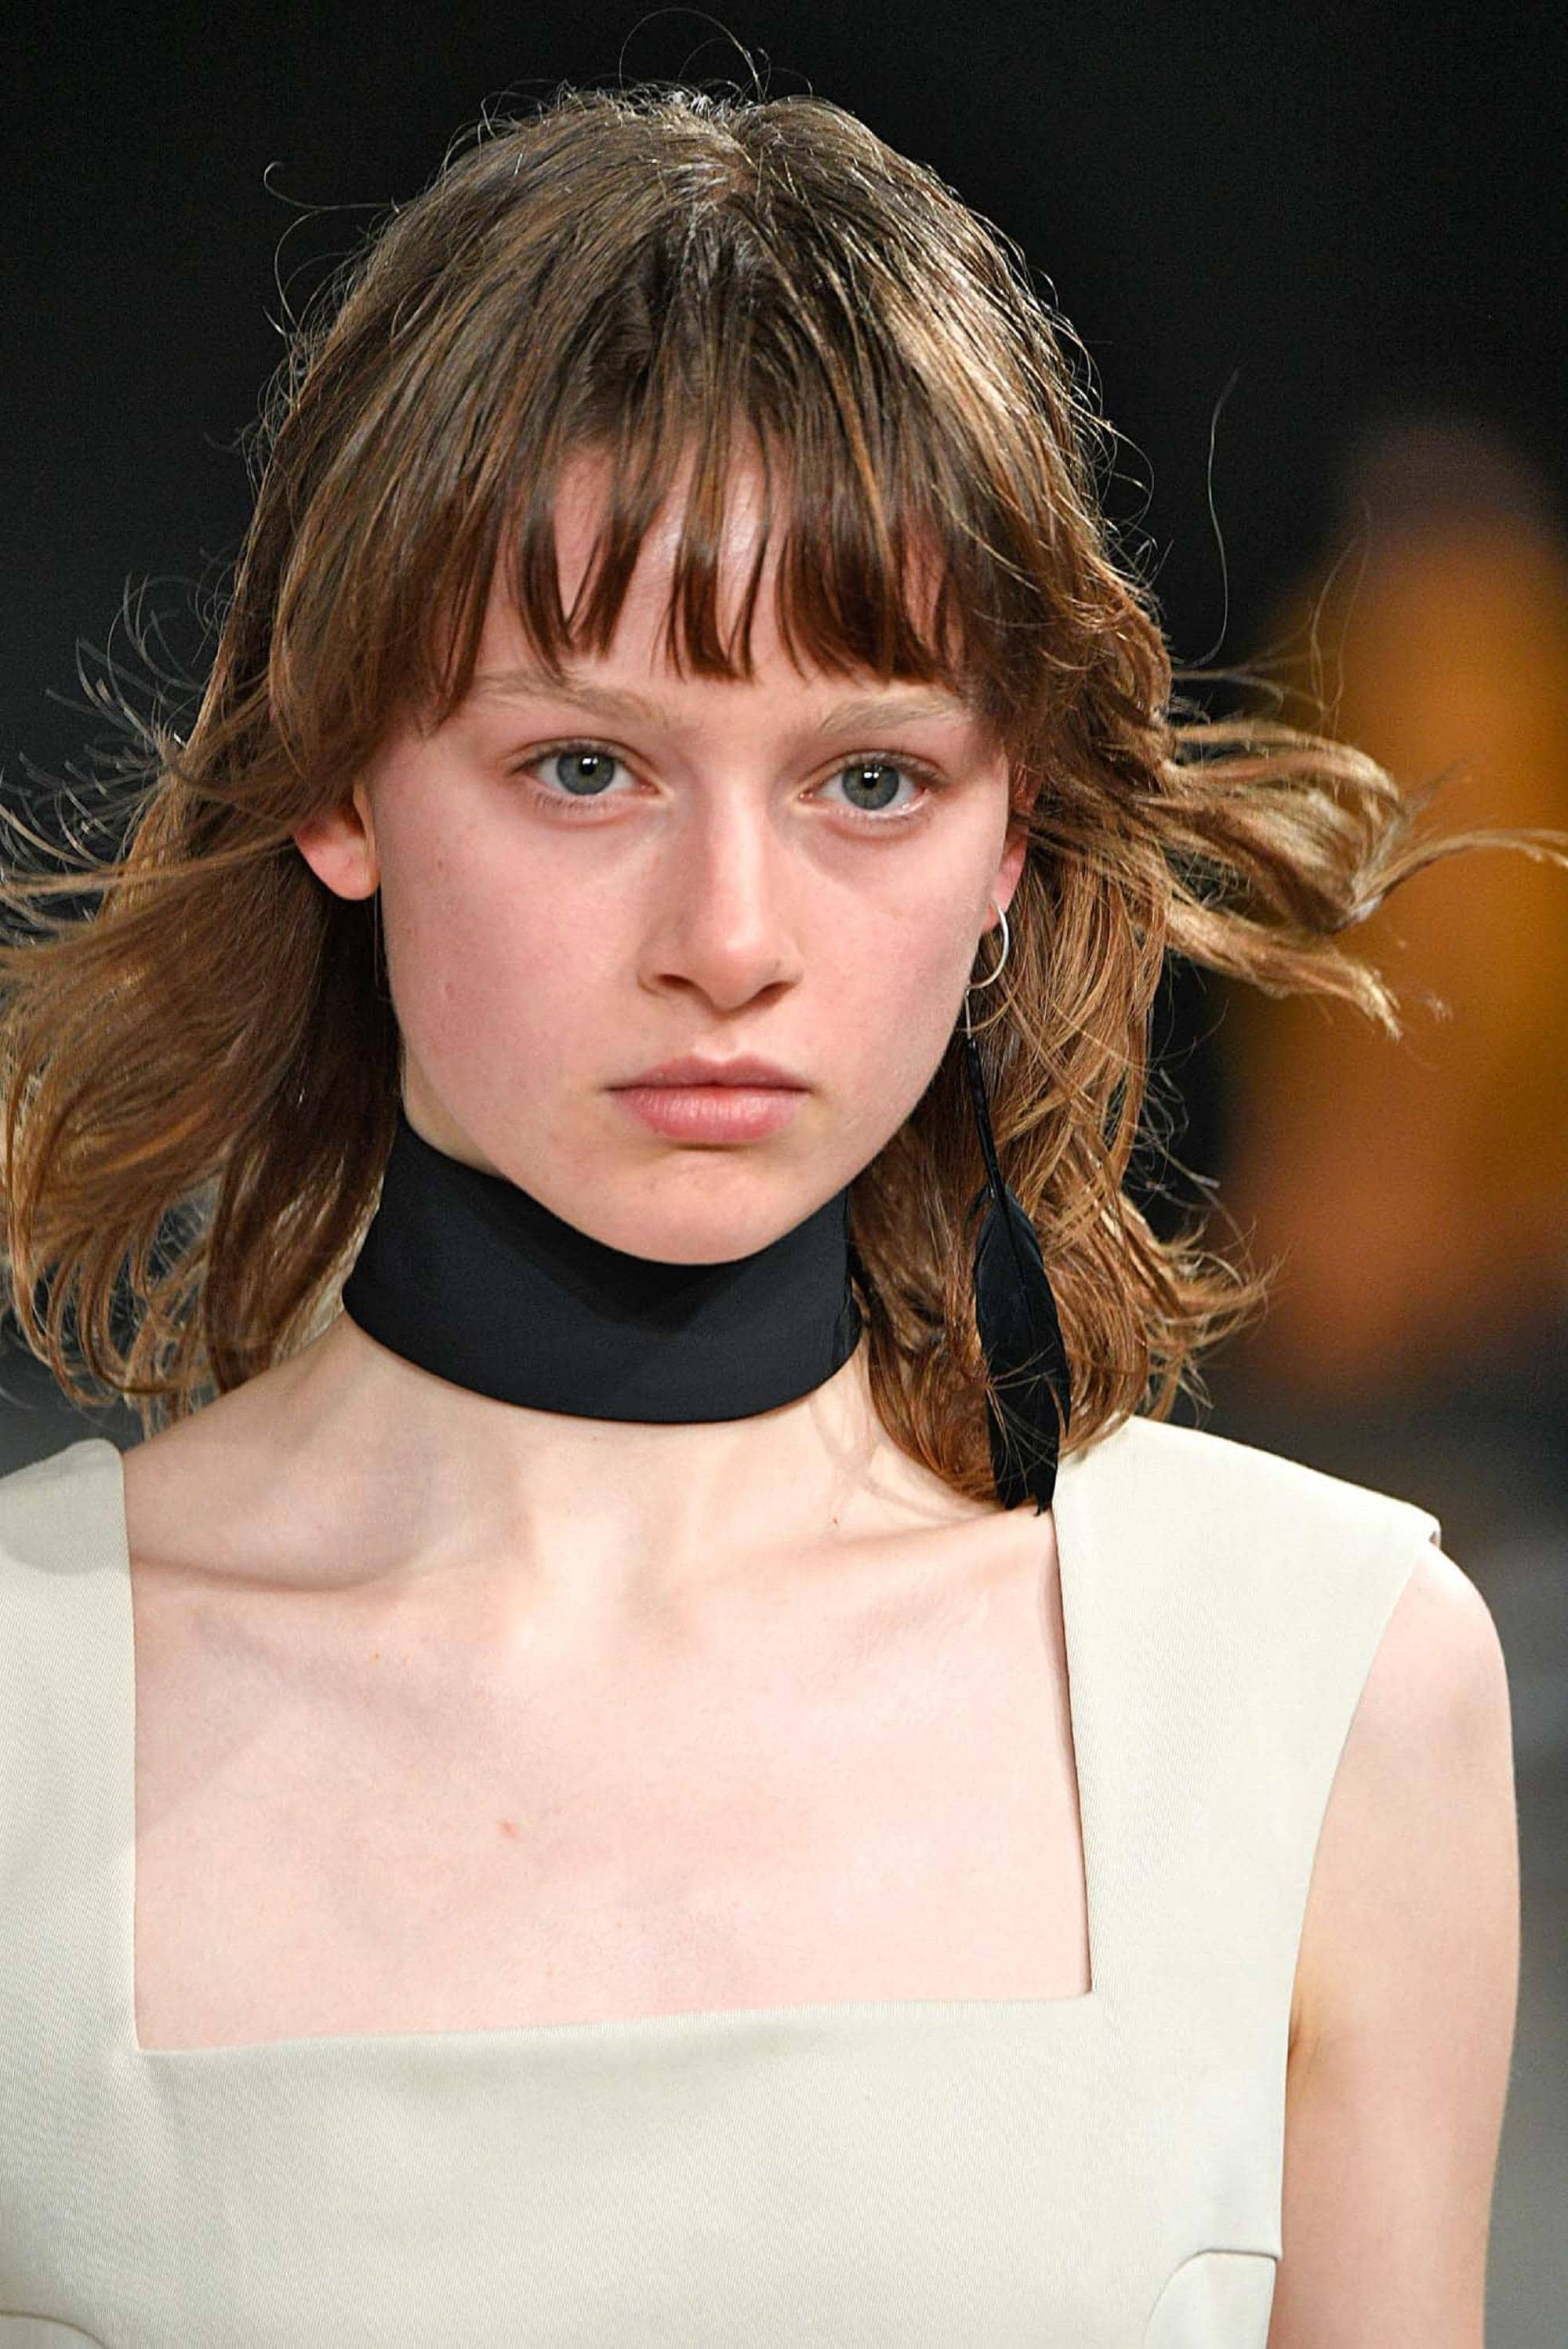 Wispy hair: Closeup shot of woman with wearing white sleeveless blouse and black choker with brown shoulder length wispy hair and bangs